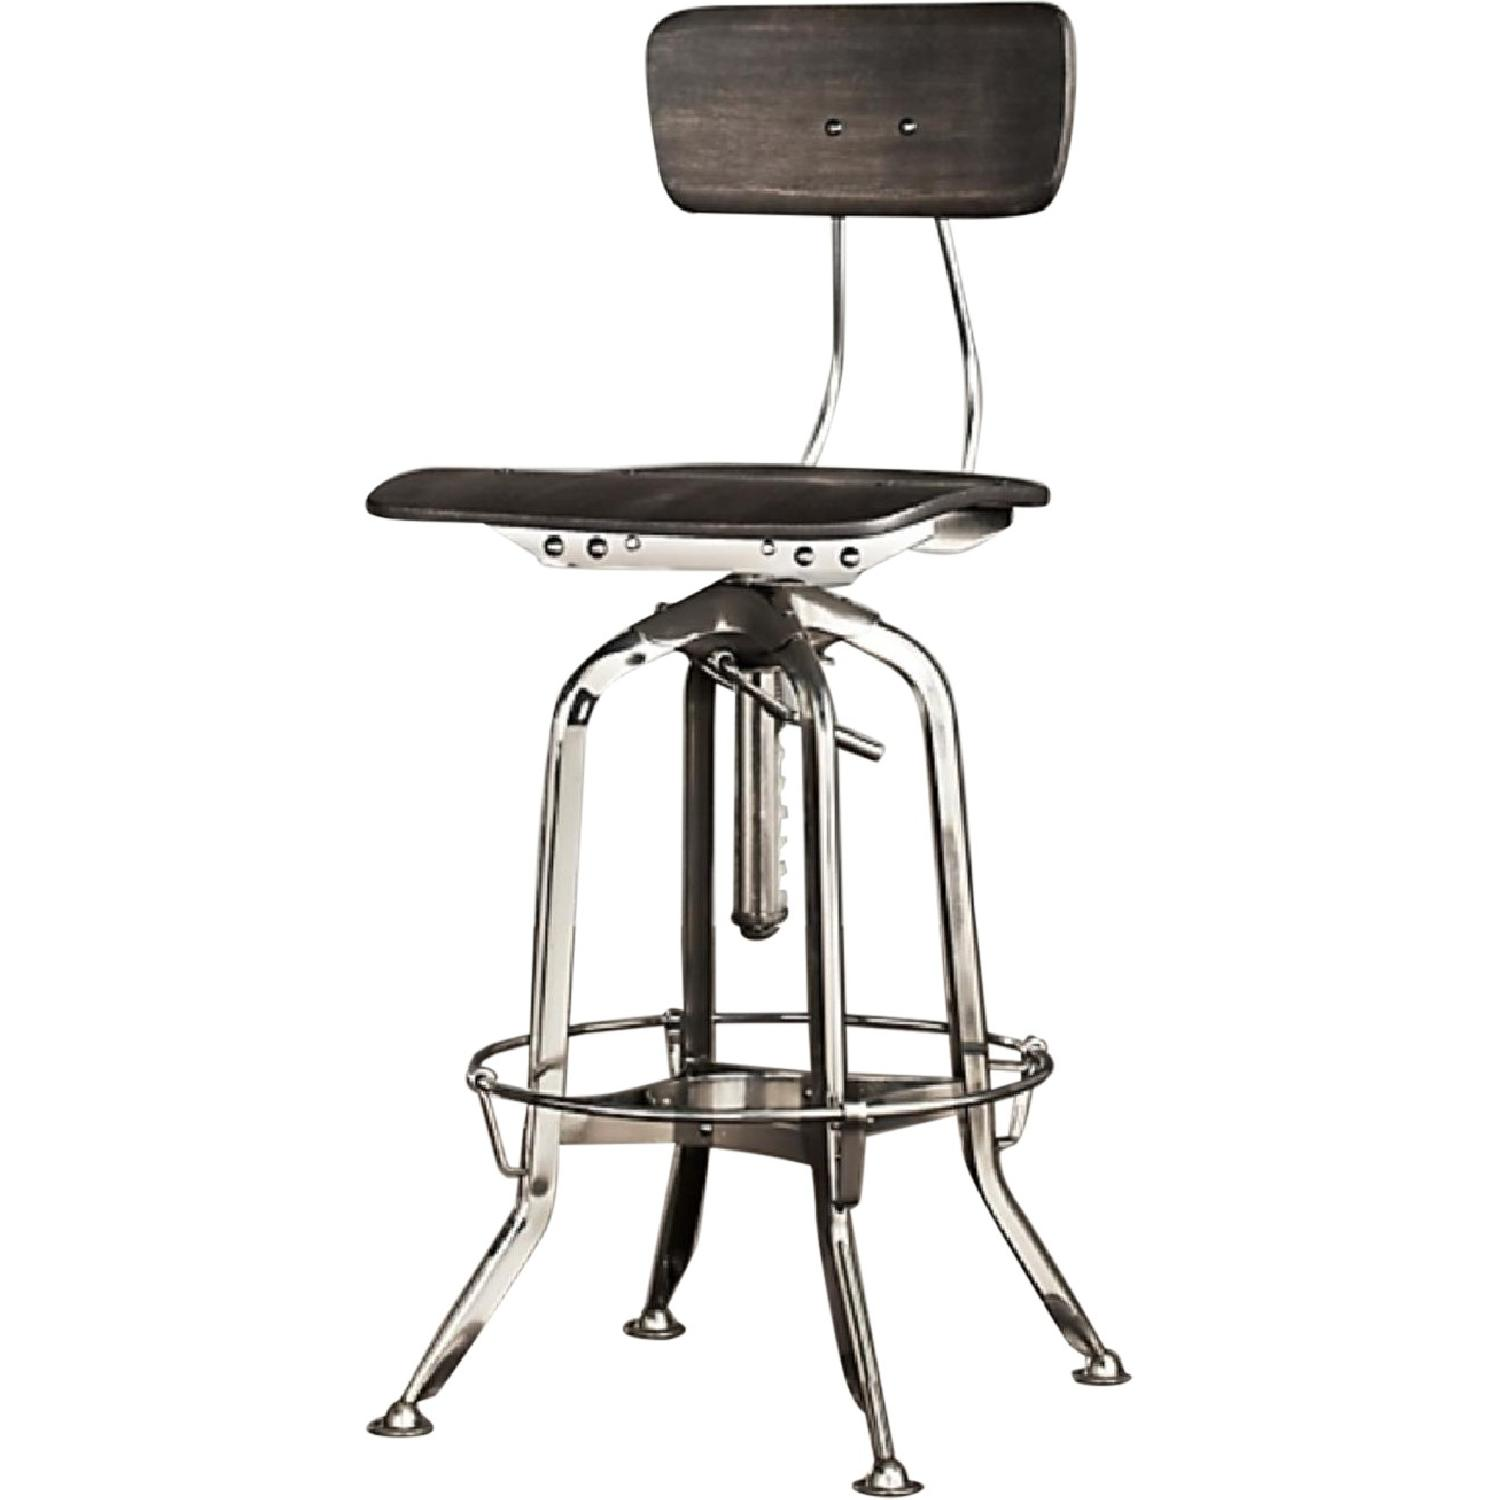 Restoration Hardware 1940S Vintage Toledo Bar Stool